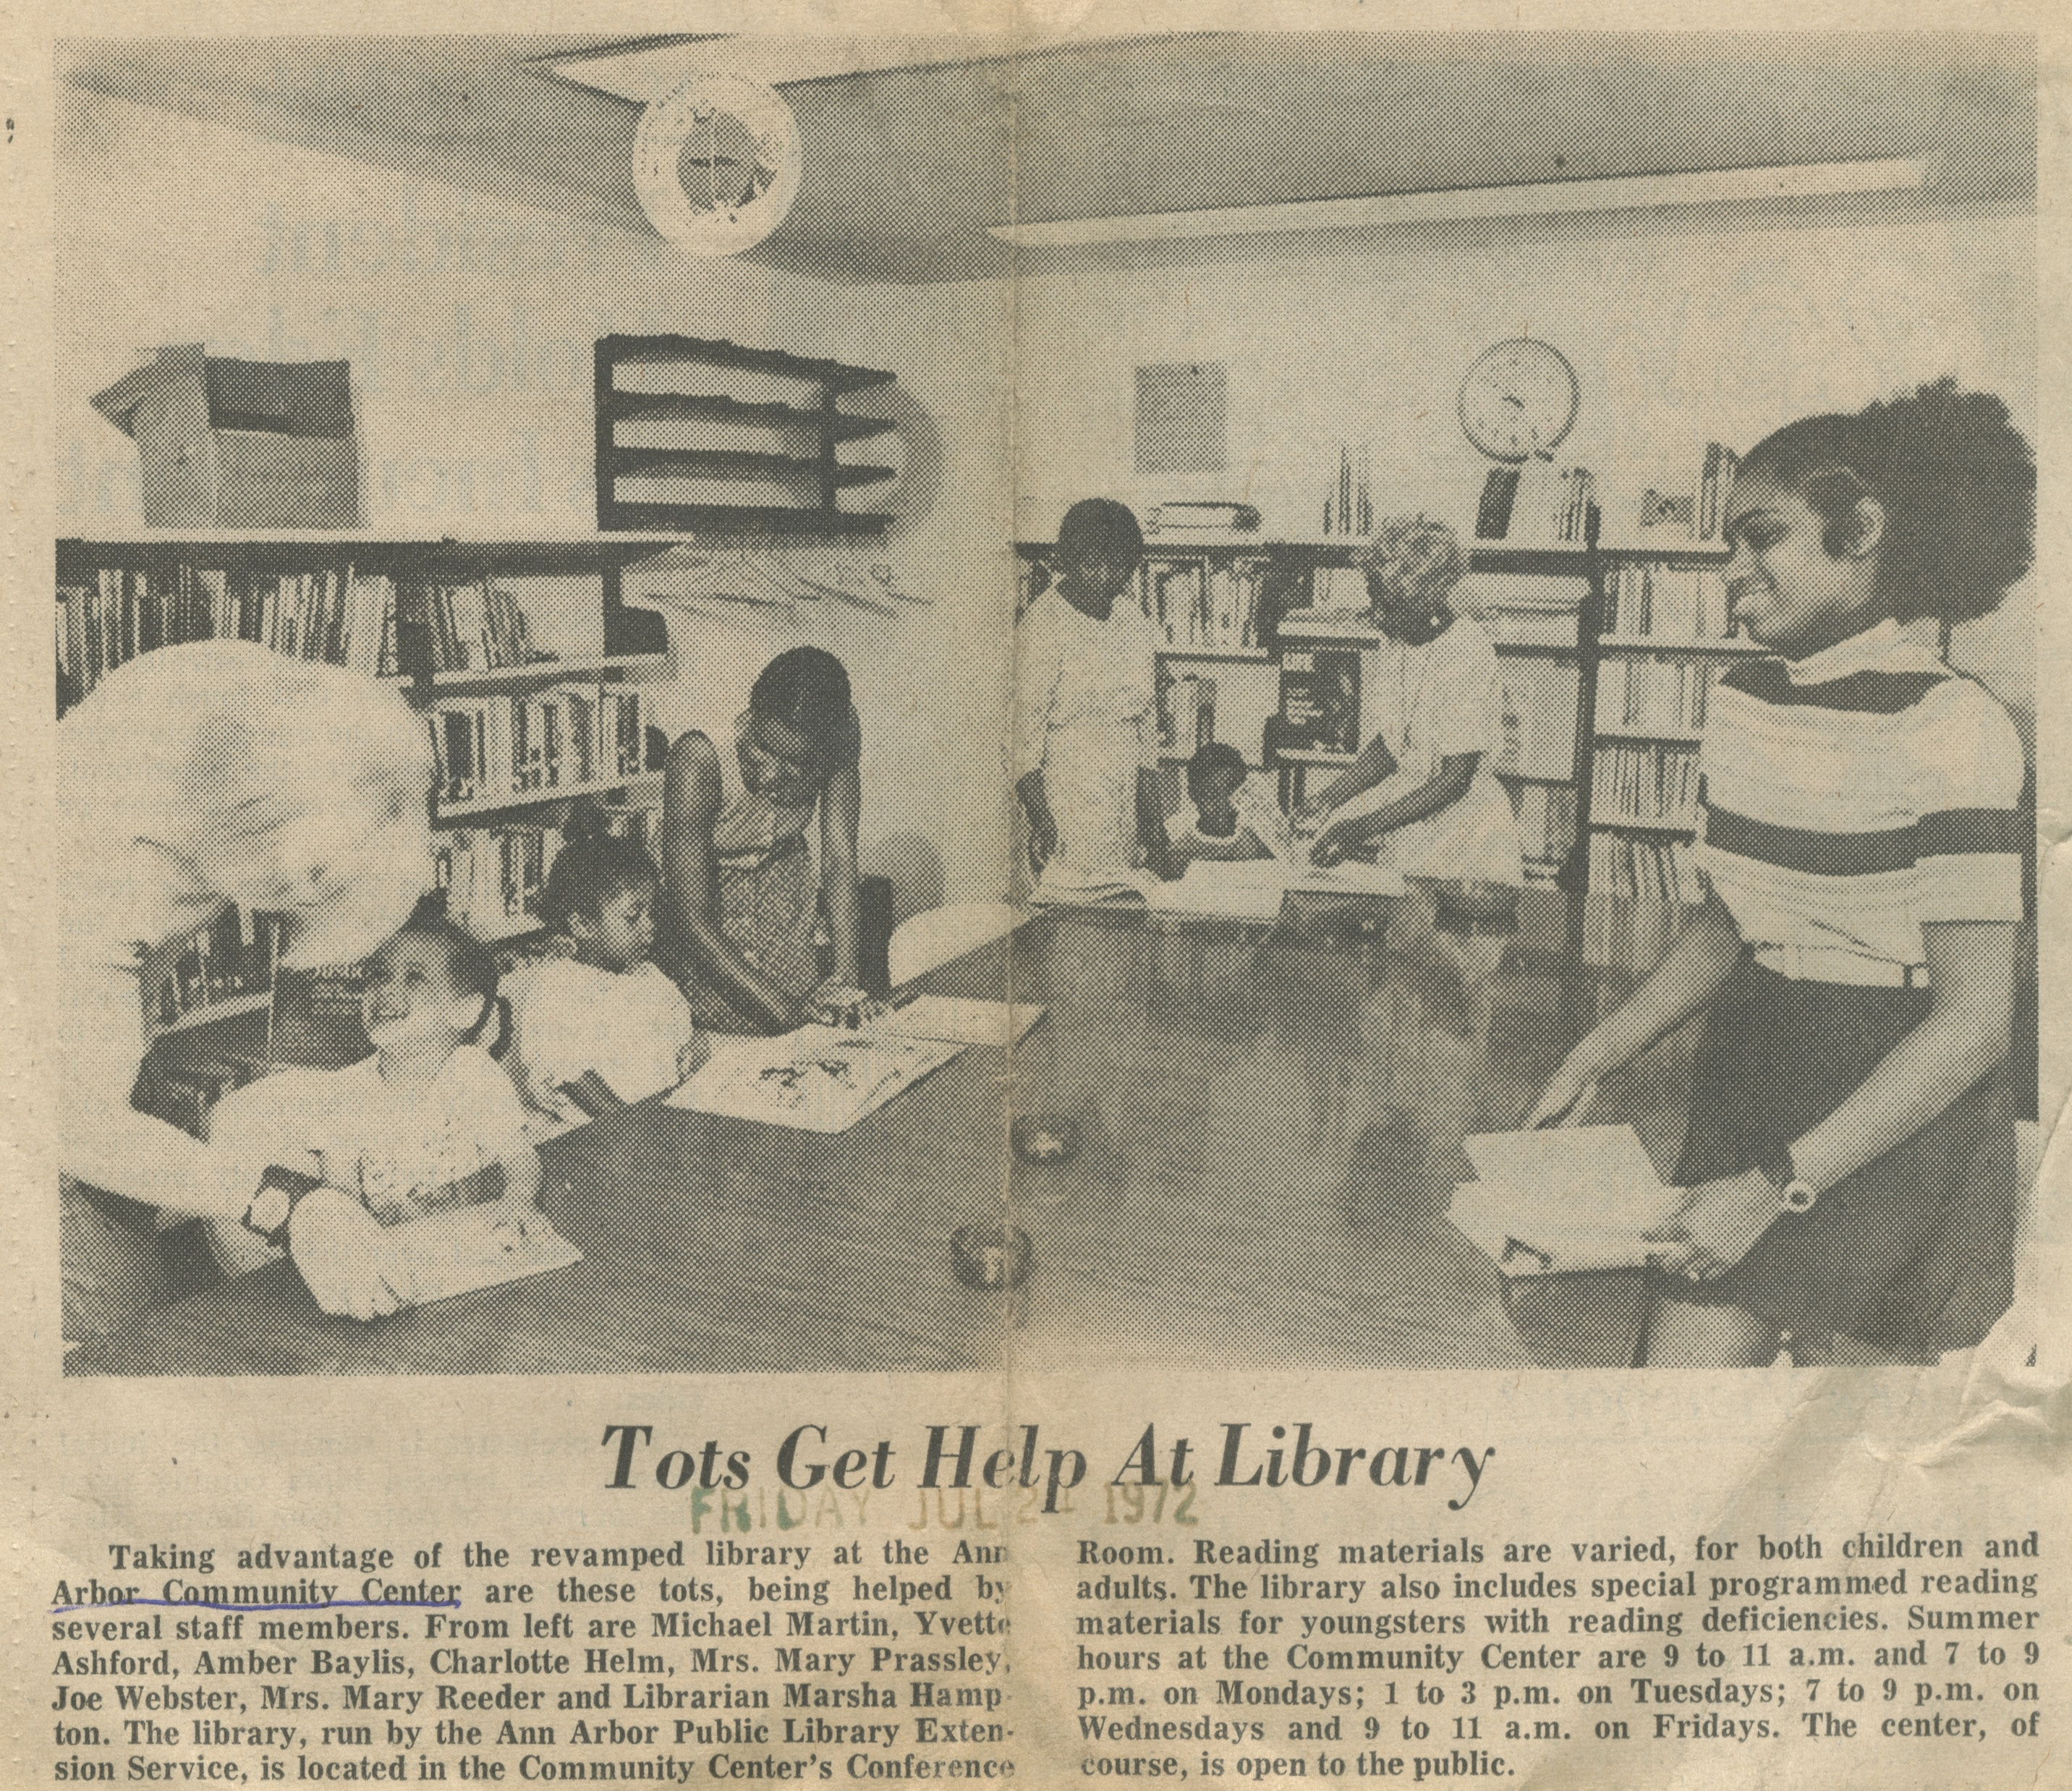 Tots Get Help At Library image